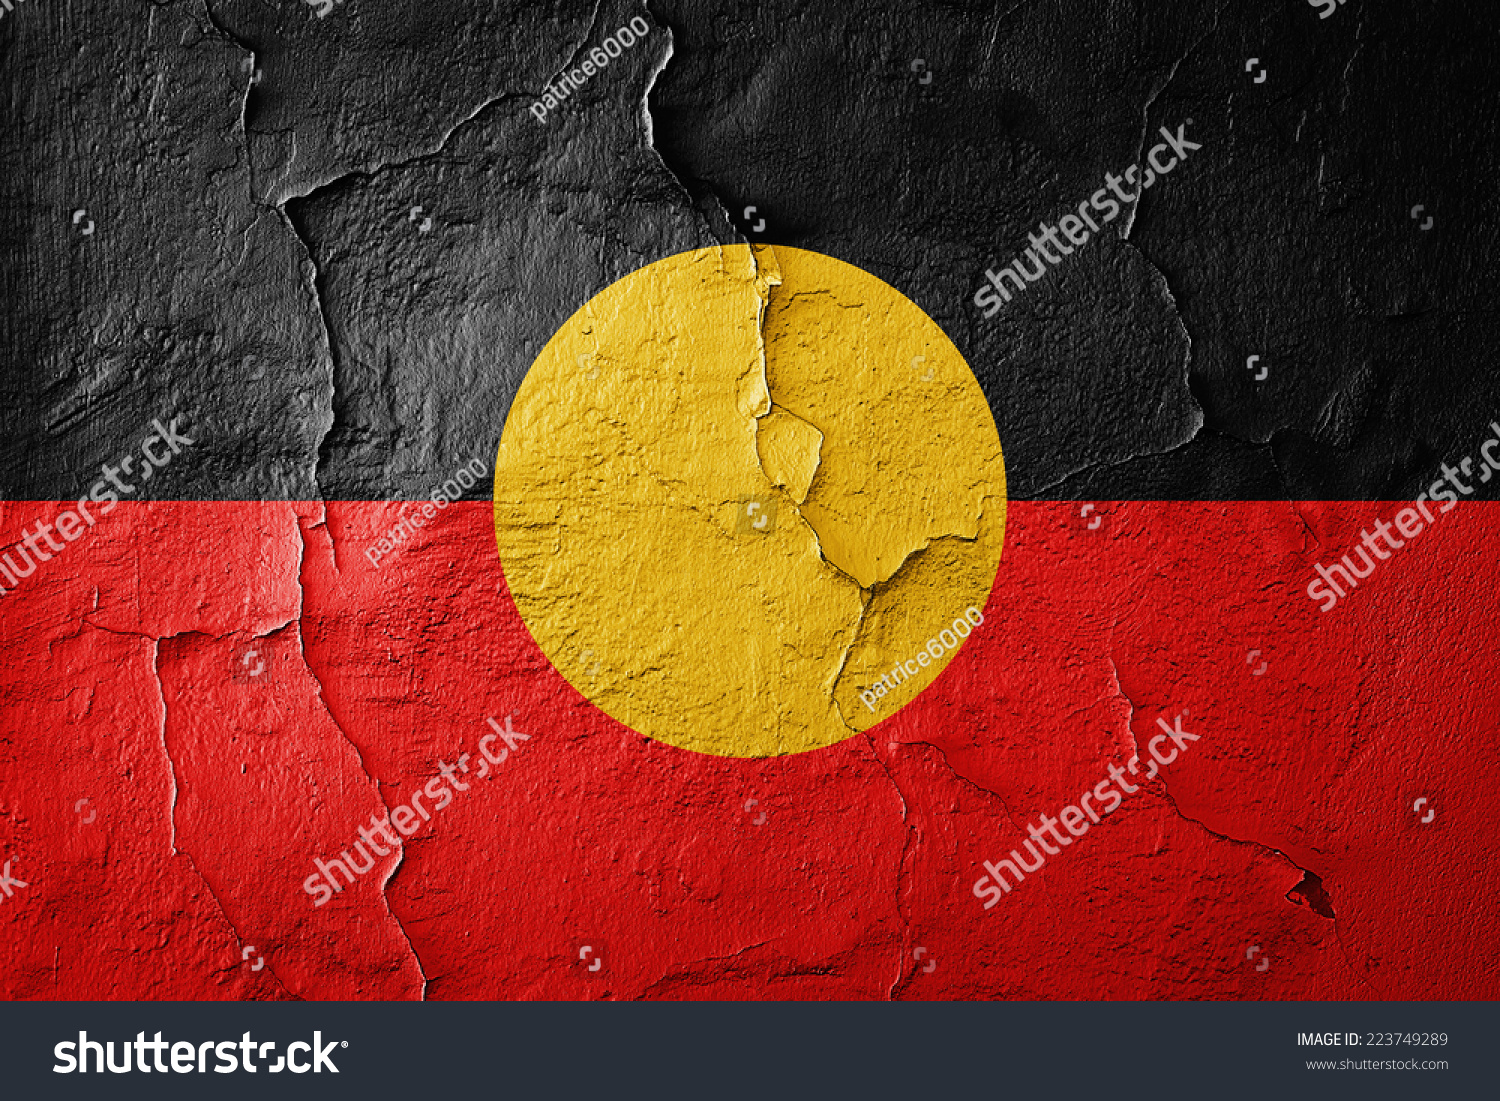 Aboriginal Australia Flag Wall Background Stockillustration ...